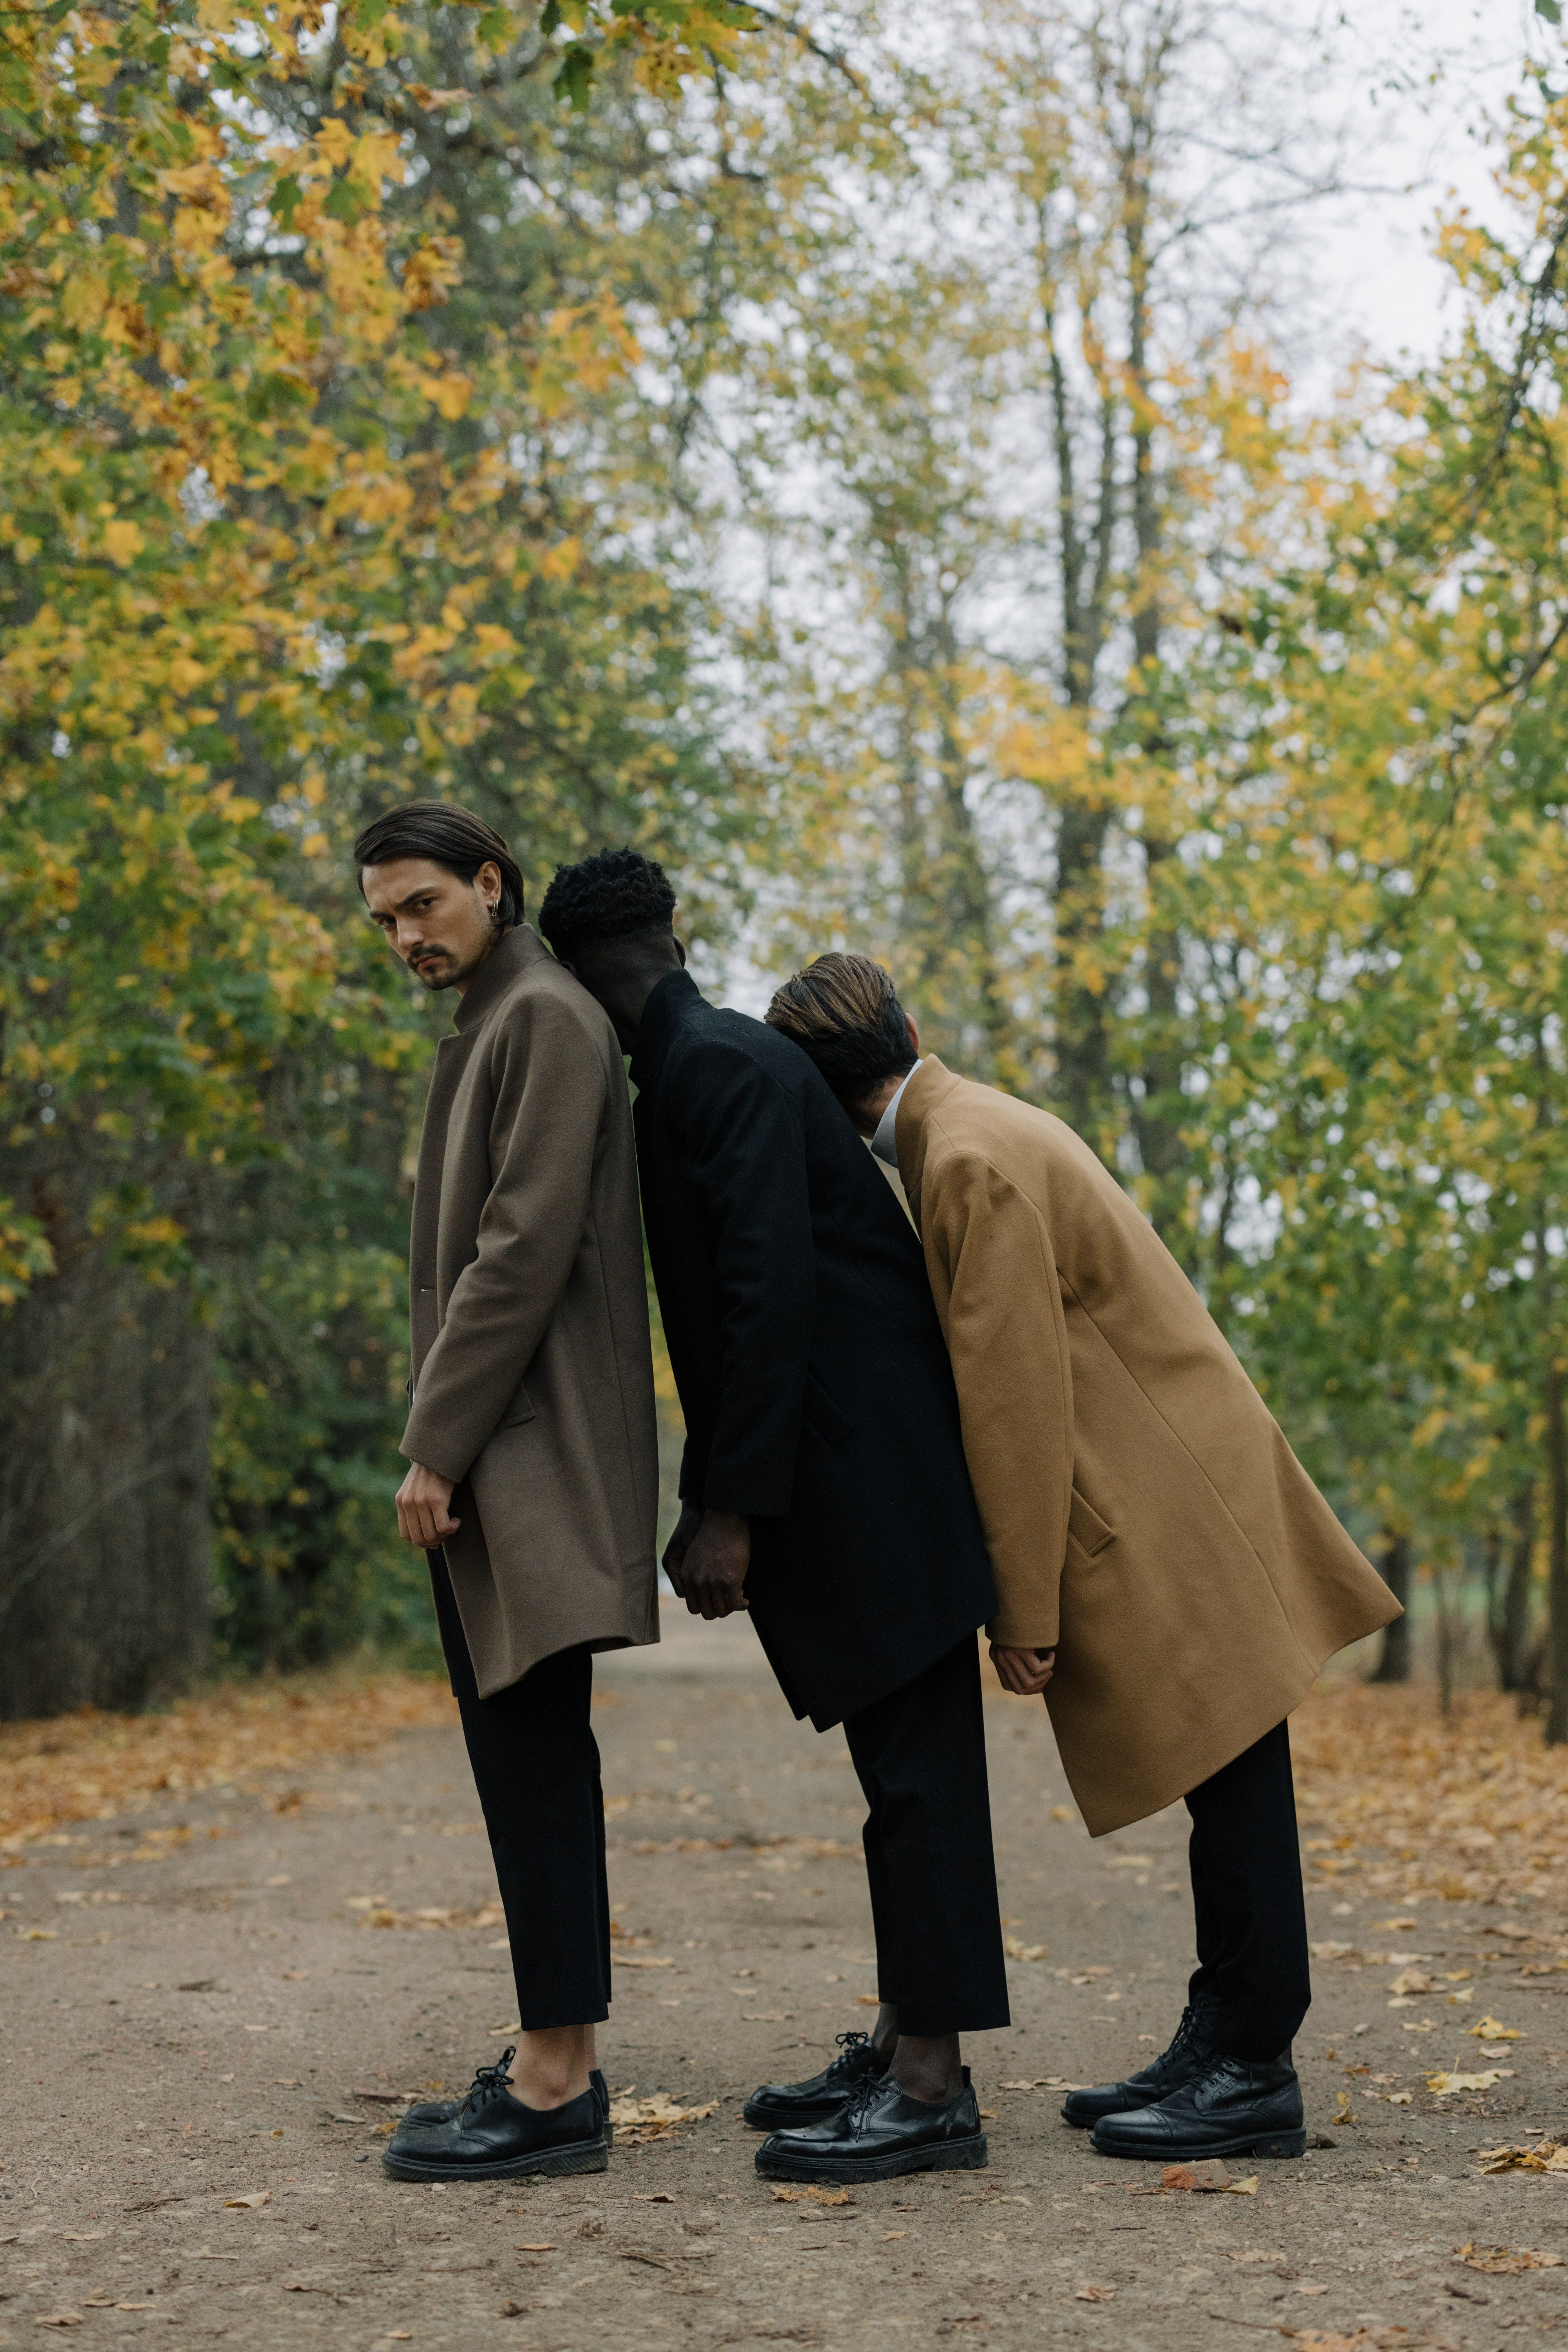 Pictured - The males standing near trees | Source: Pexels